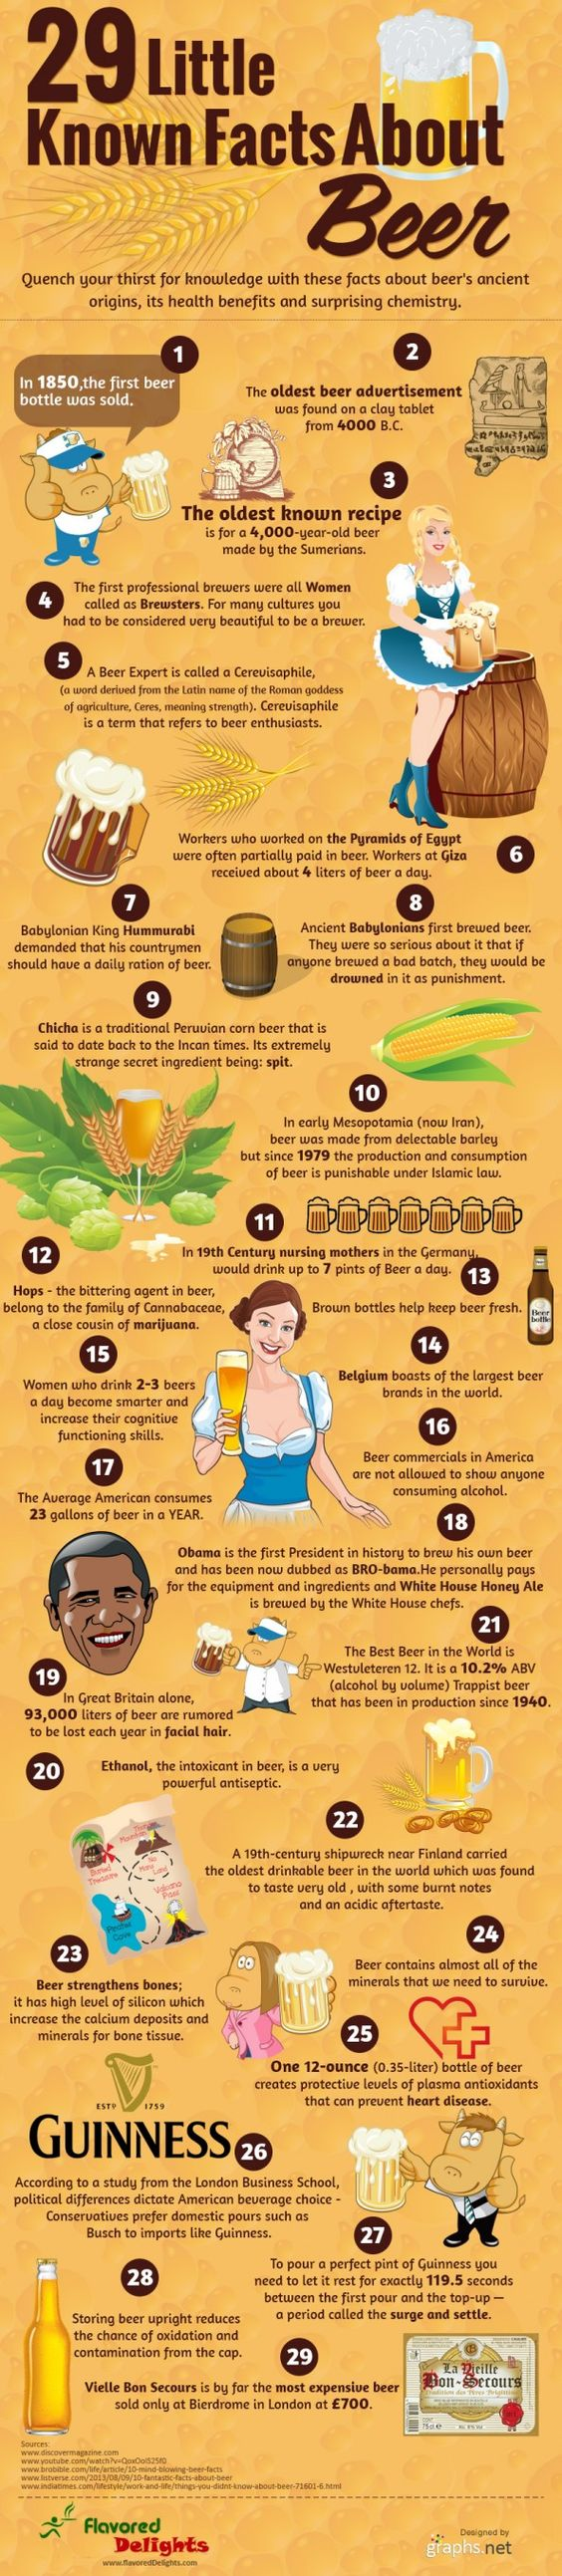 "29 Interesting Facts of Beer #Infographic www.LiquorList.com ""The Marketplace for Adults with Taste!"" @LiquorListcom #LiquorList.com:"